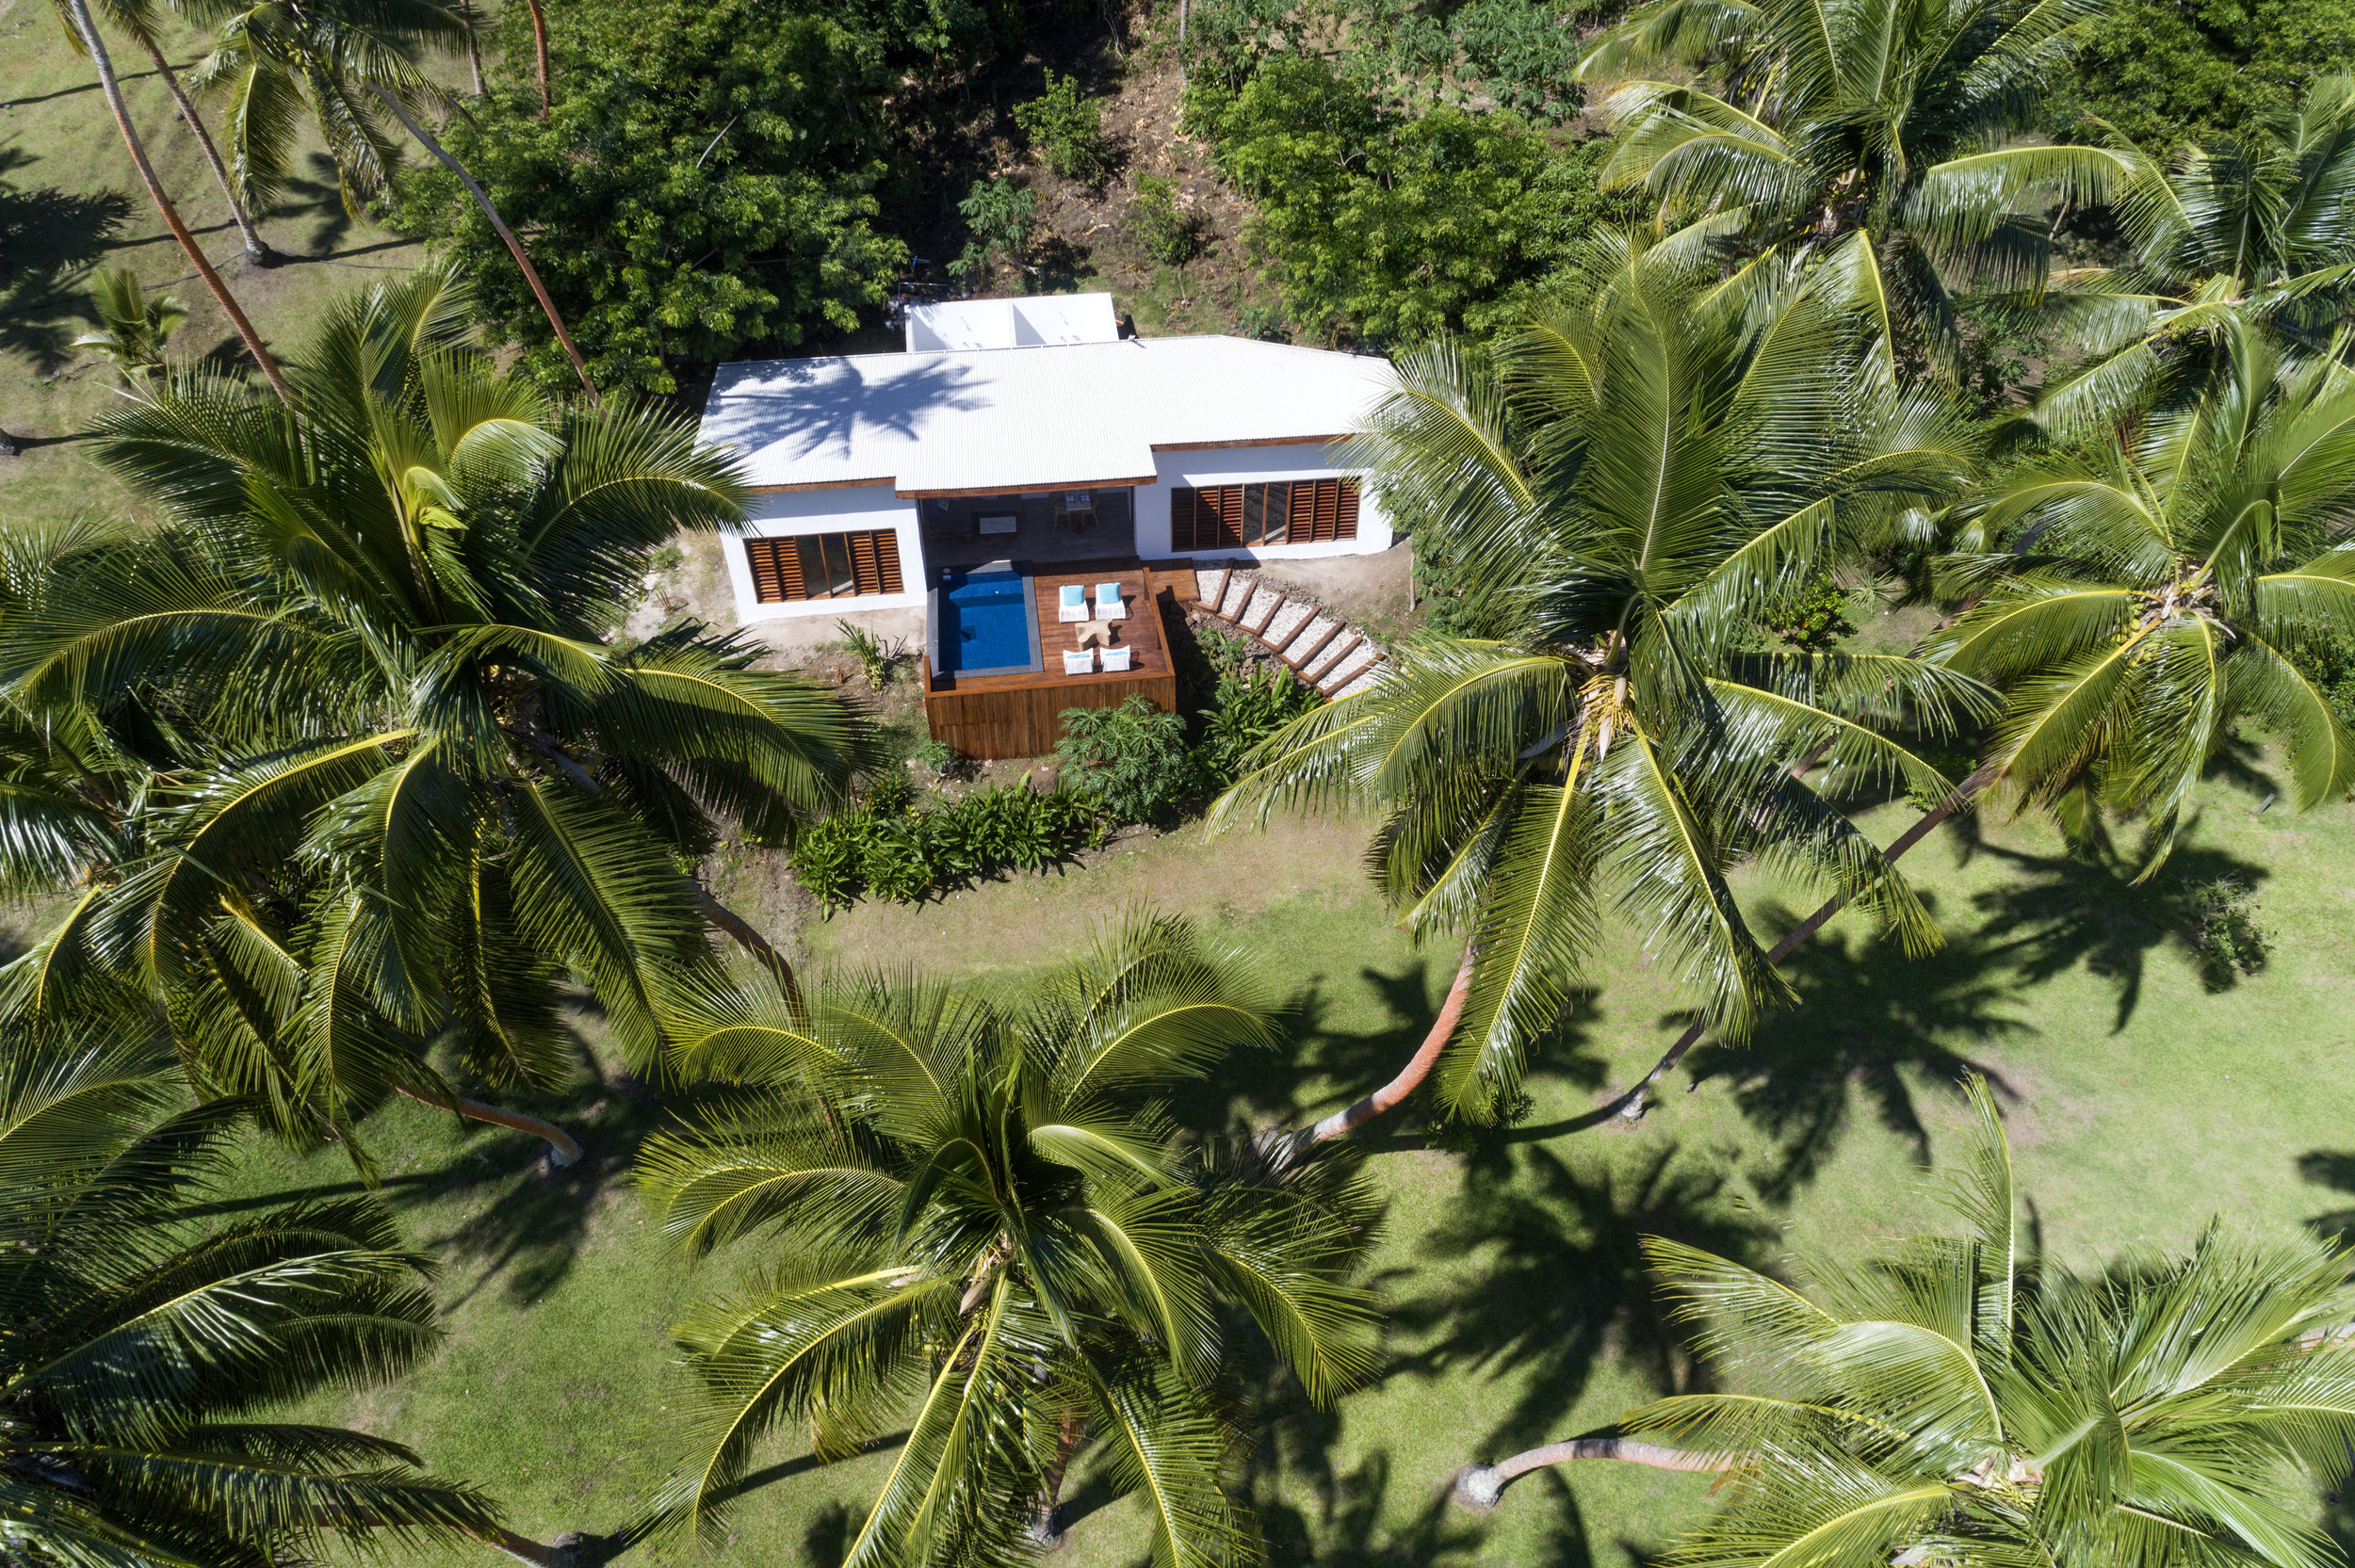 Fiji Resort Family Accommodation up to 5 persons - The Remote Resort10.jpg